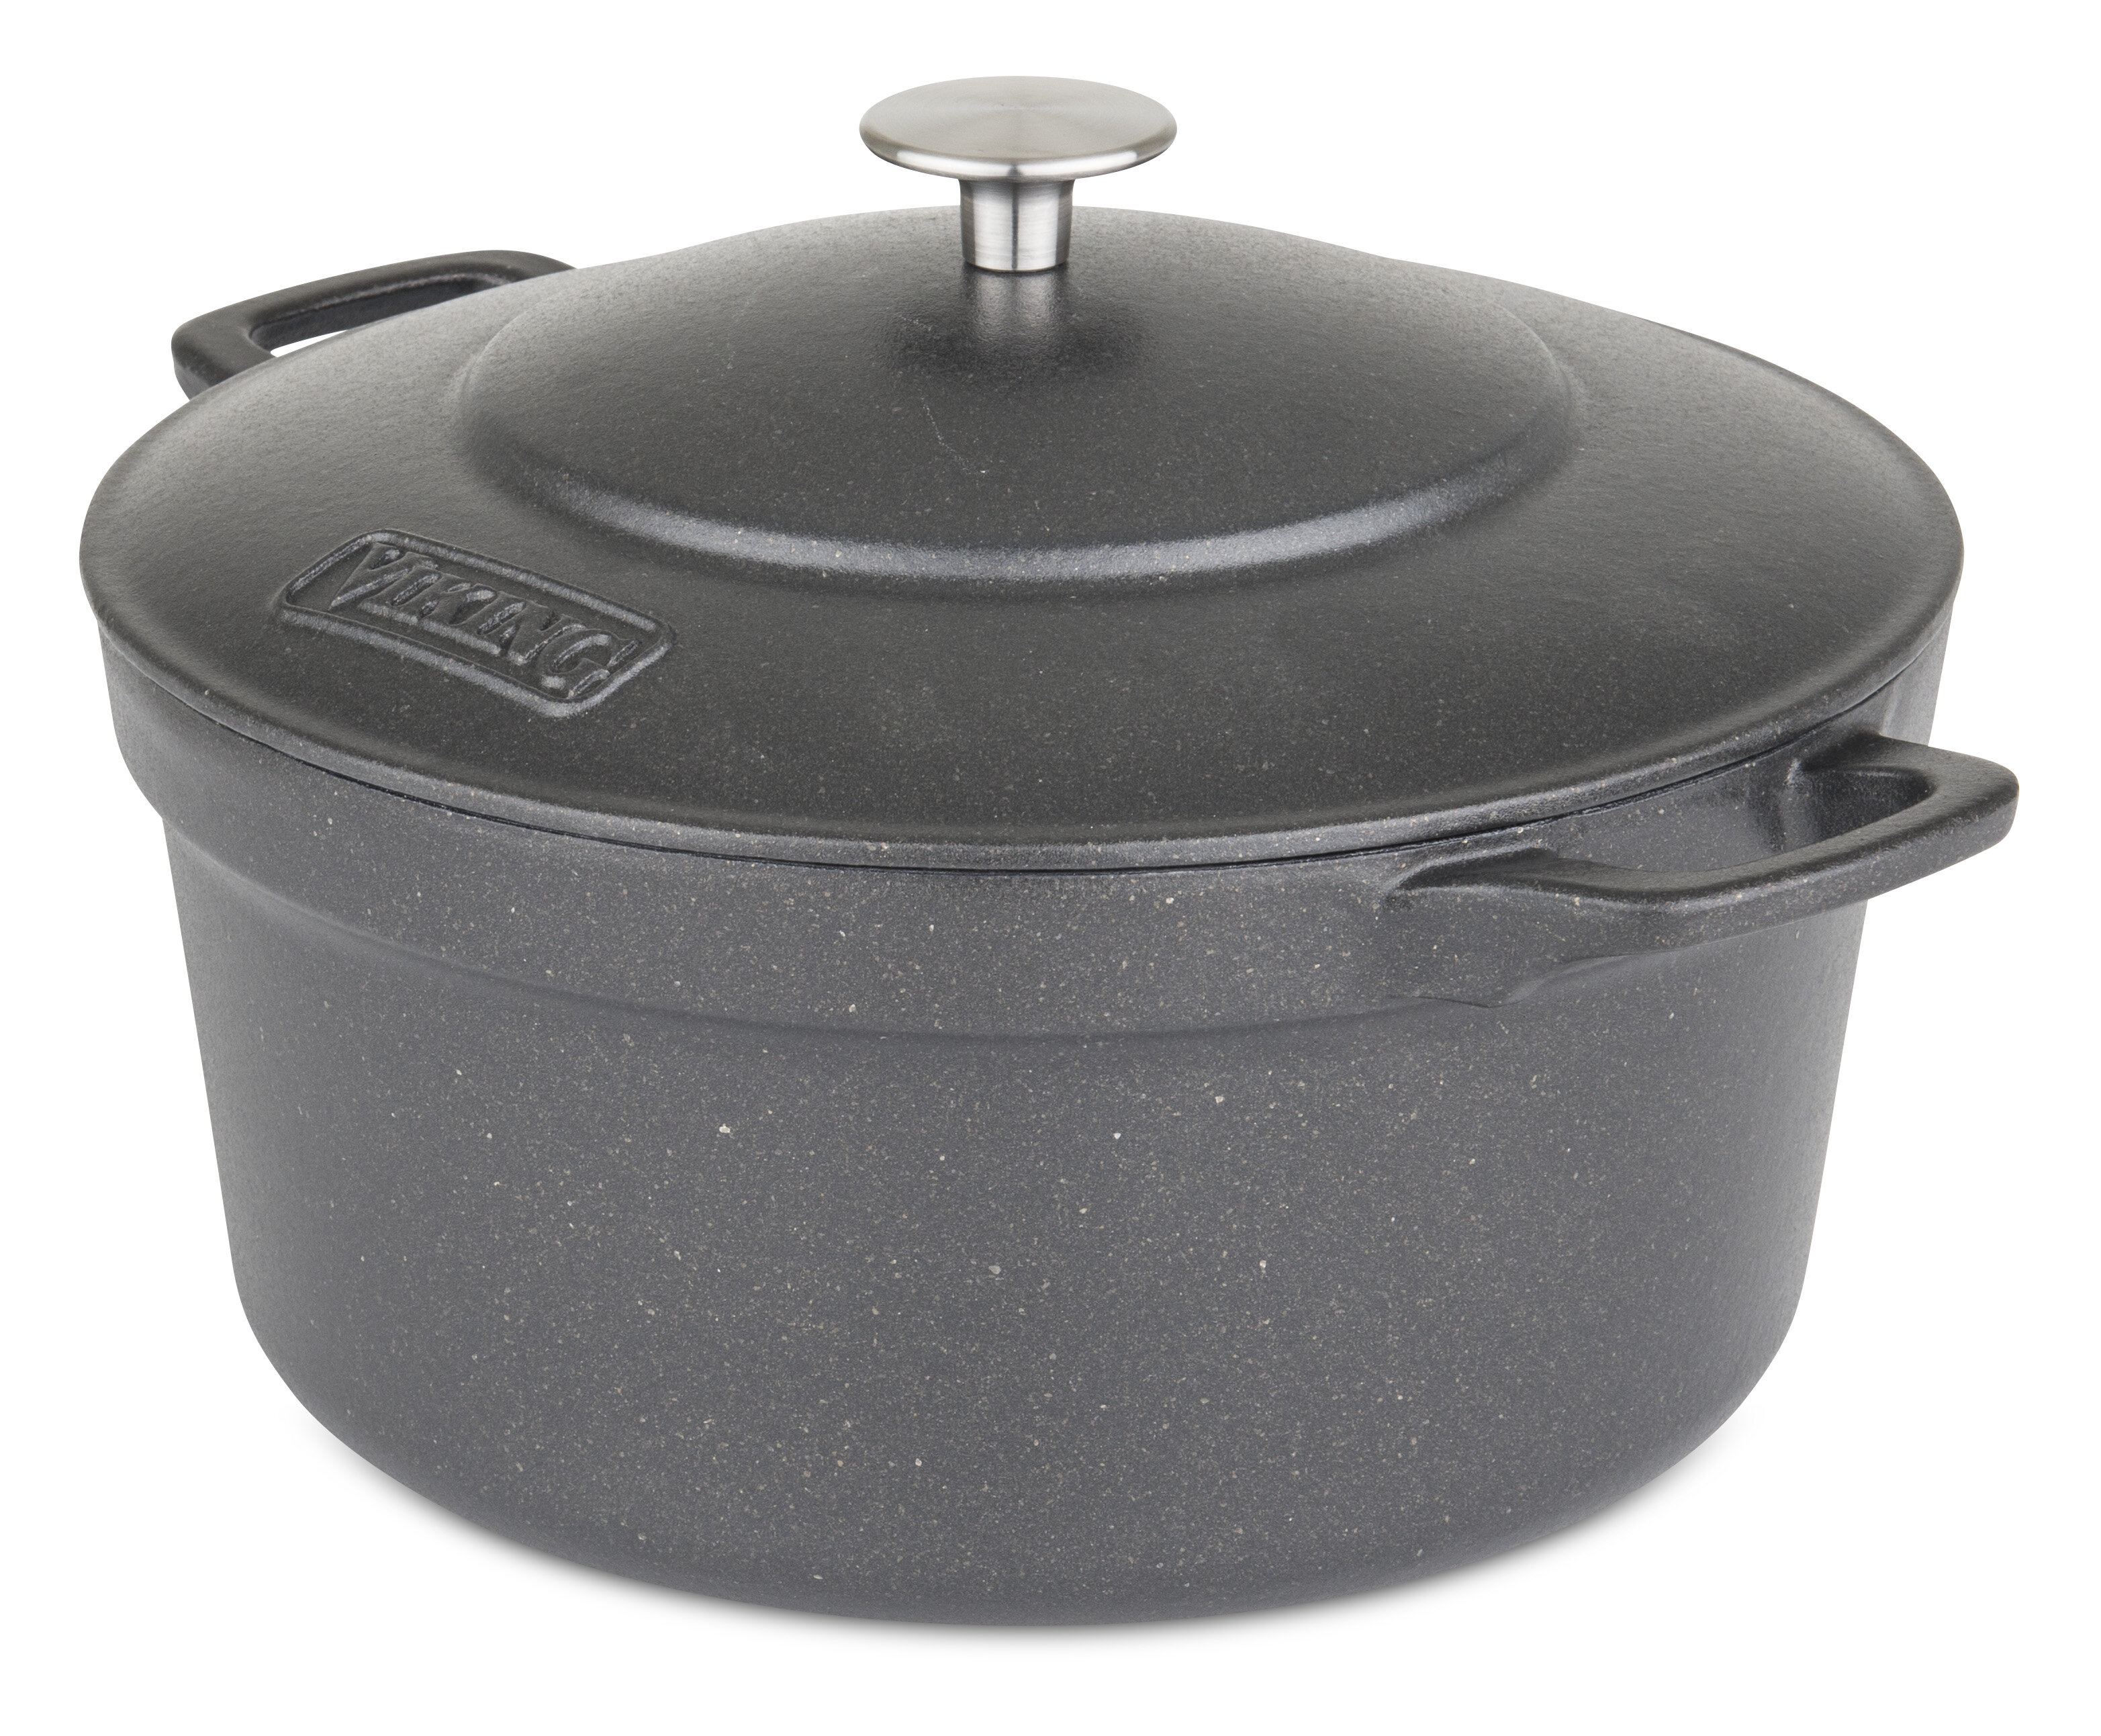 Viking Non Stick Cast Iron Round Dutch Oven Reviews Perigold